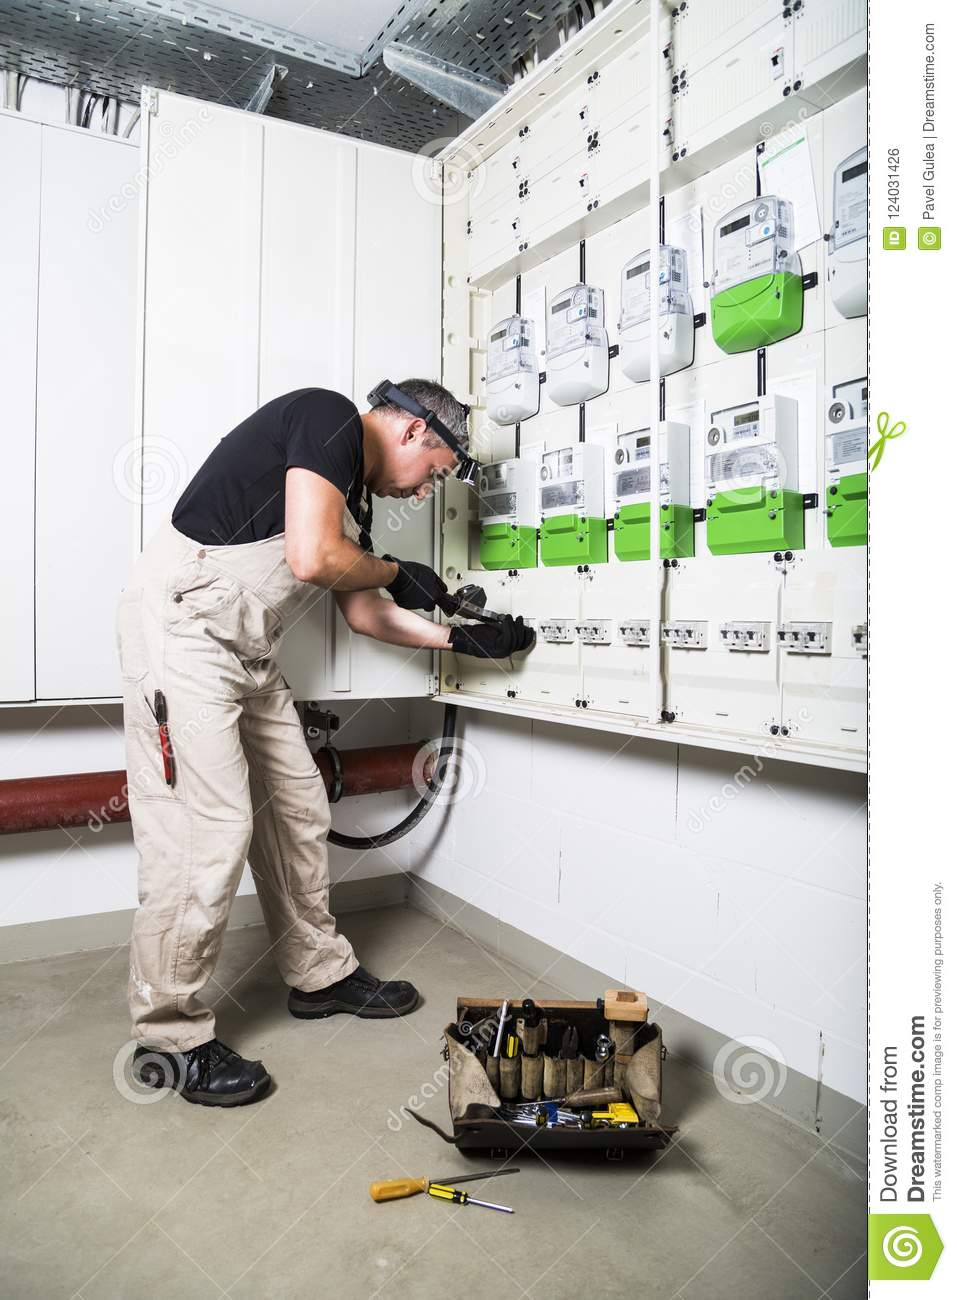 hight resolution of electrician standing near fuse box or switch box and testing equipment with retro voltmeter box of electrician tools stands near